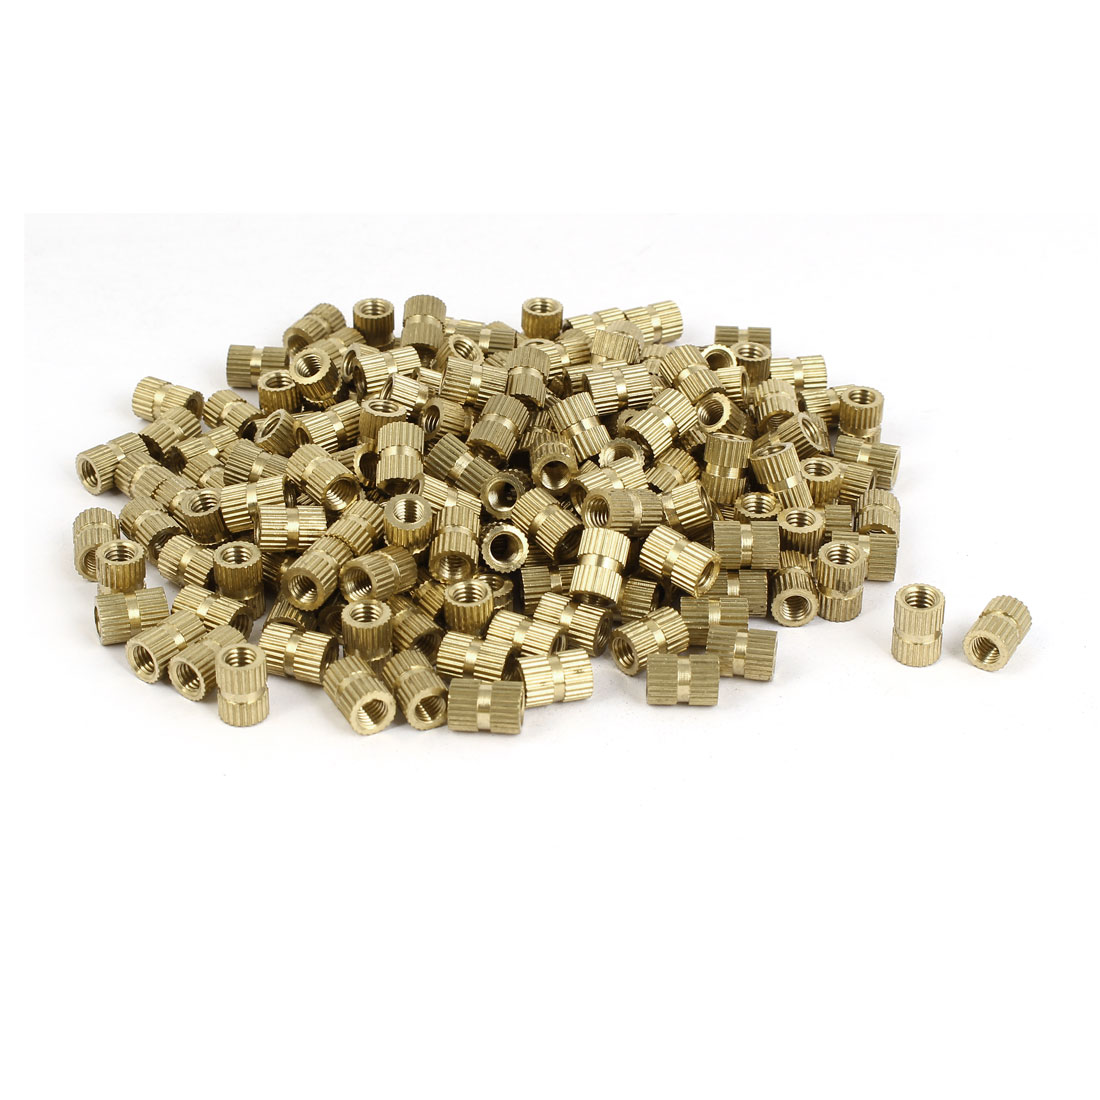 M5 x 10mm Female Thread Brass Knurled Threaded Round Insert Embedded Nuts 200PCS